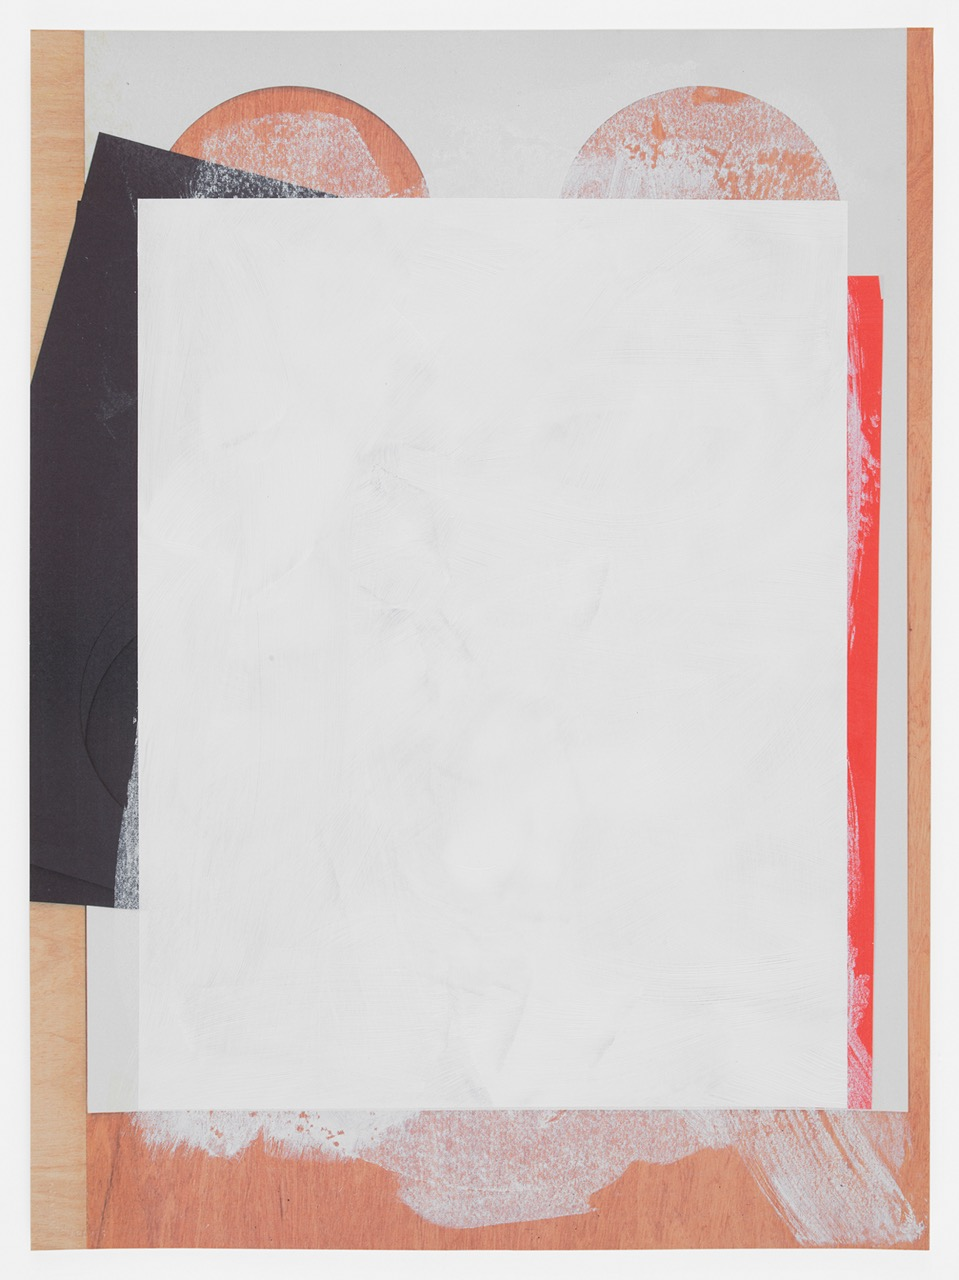 Untitled Composite, 2016  Oil and UV cured ink on paper  30 x 22 inches  76.2 x 55.9 cm